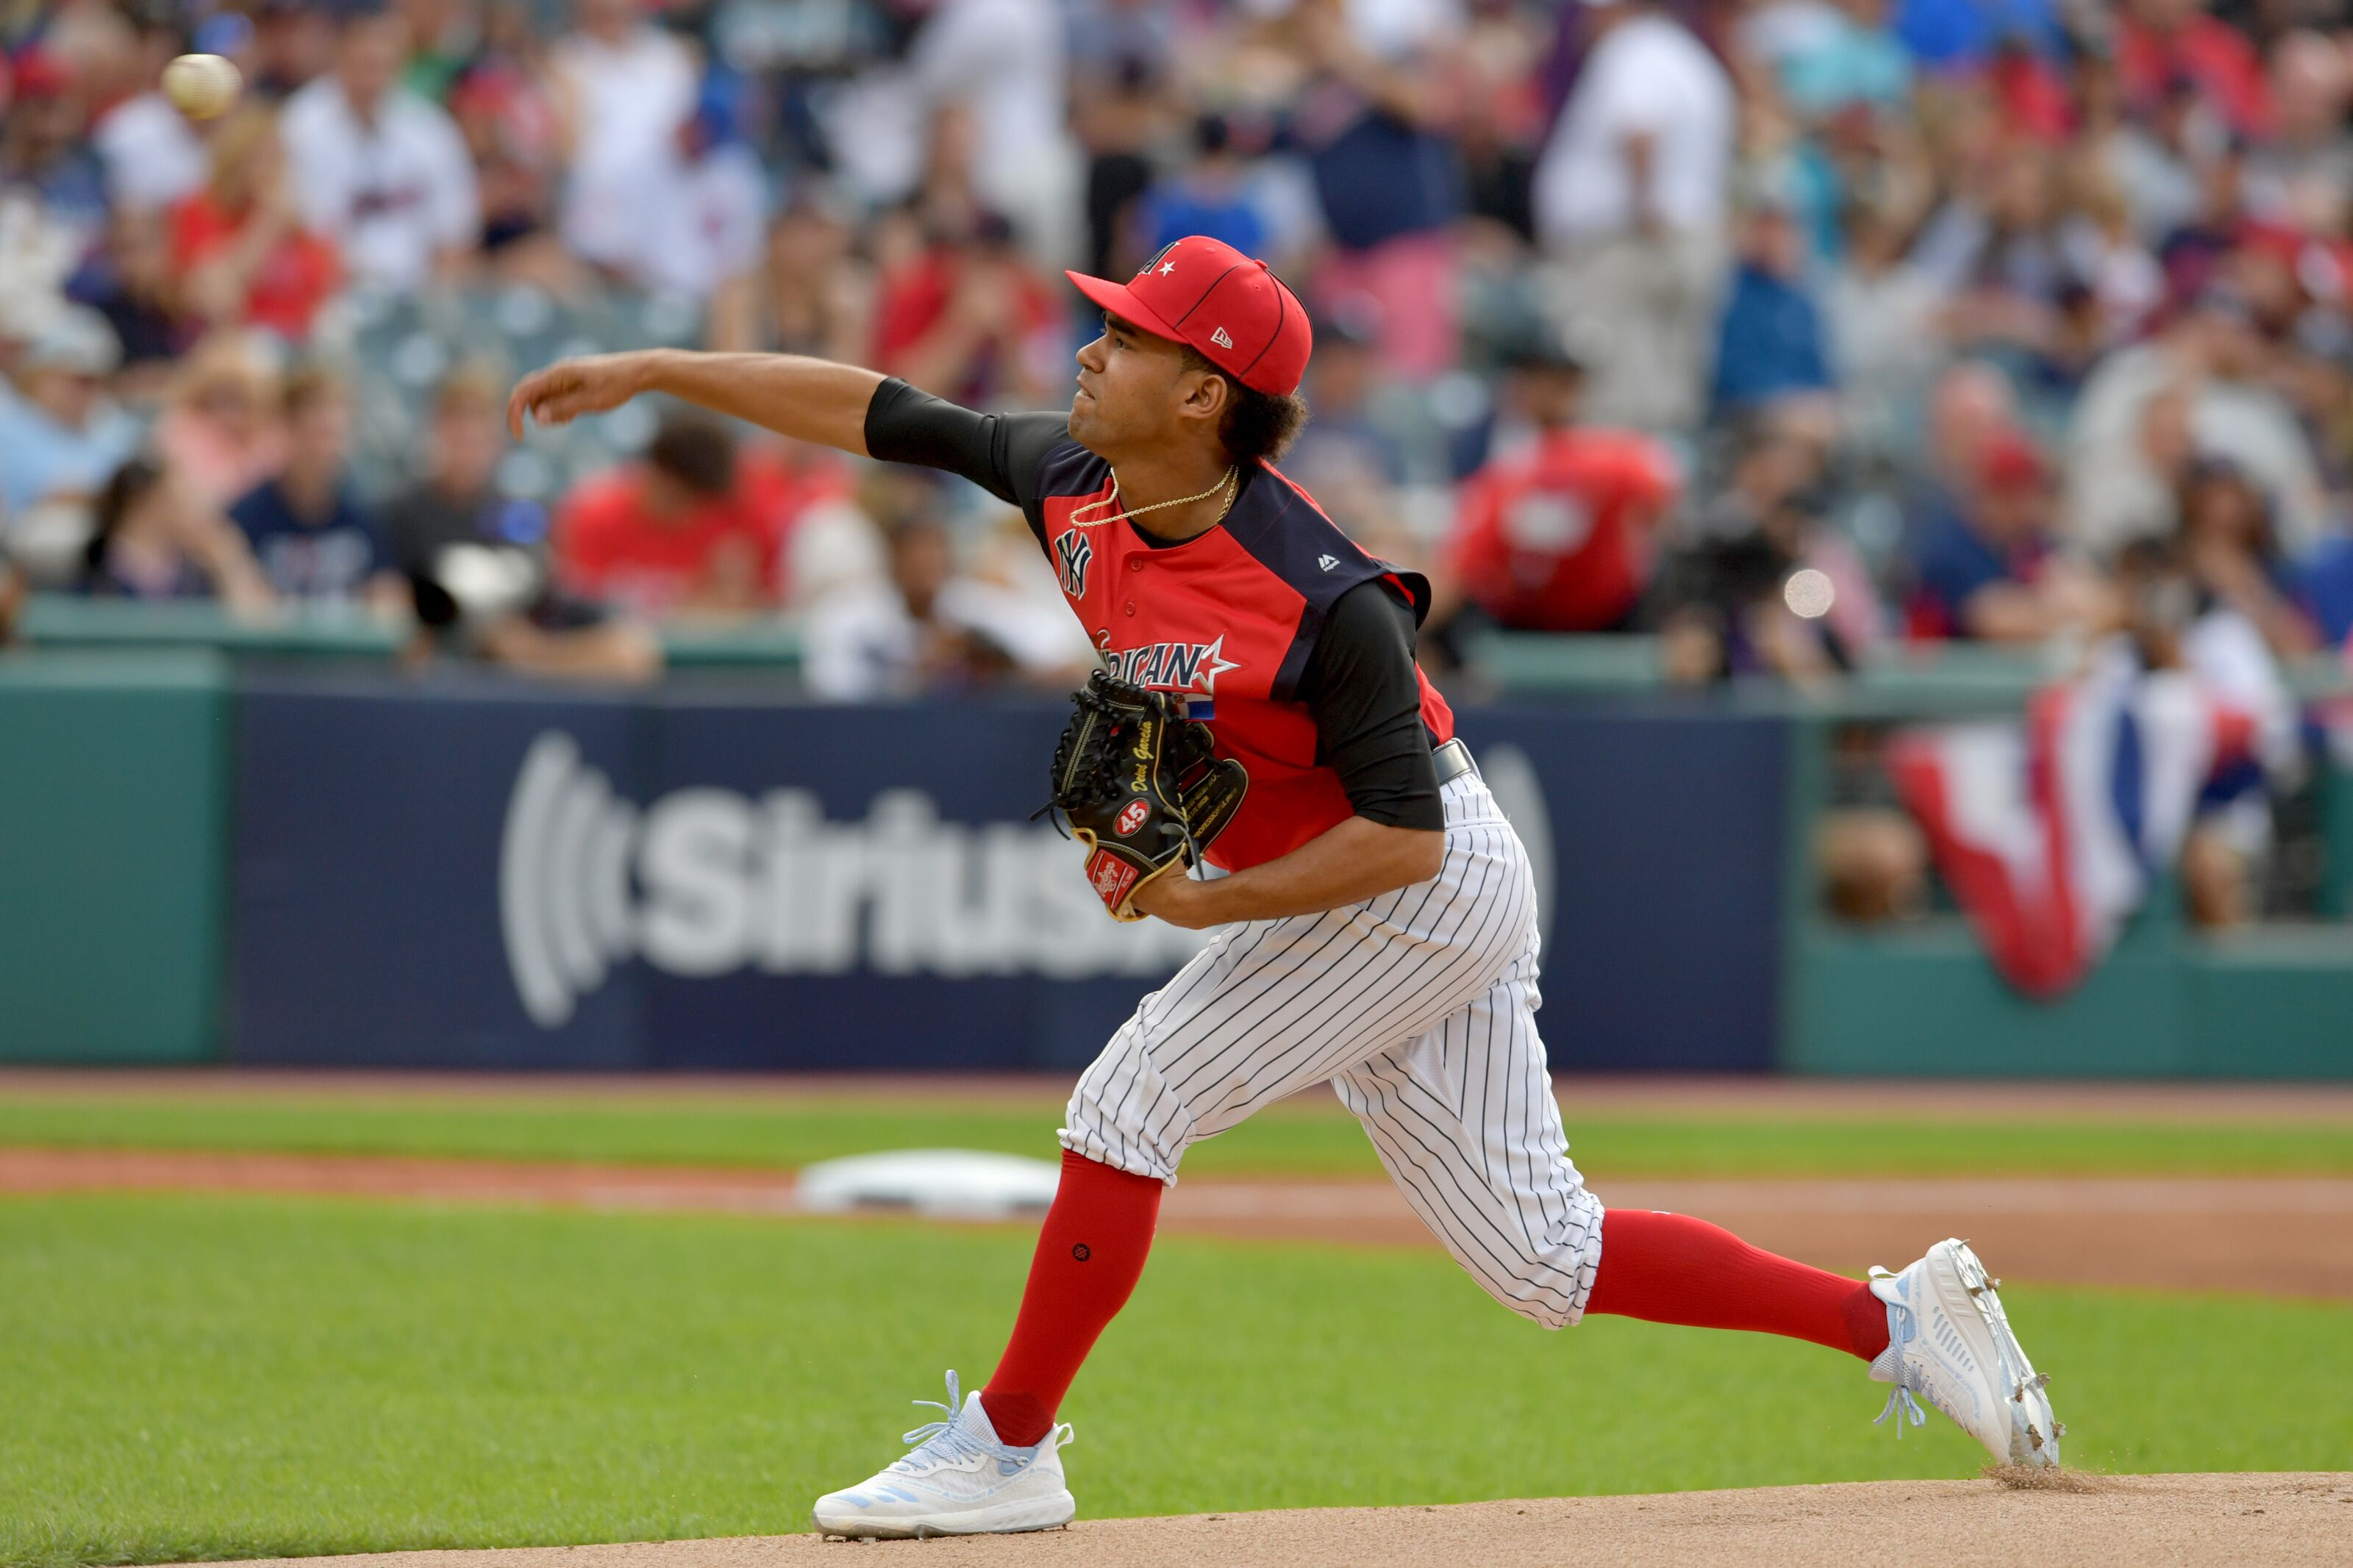 Yankees: Will Clarke Schmidt and Deivi Garcia make their big league debuts this season?